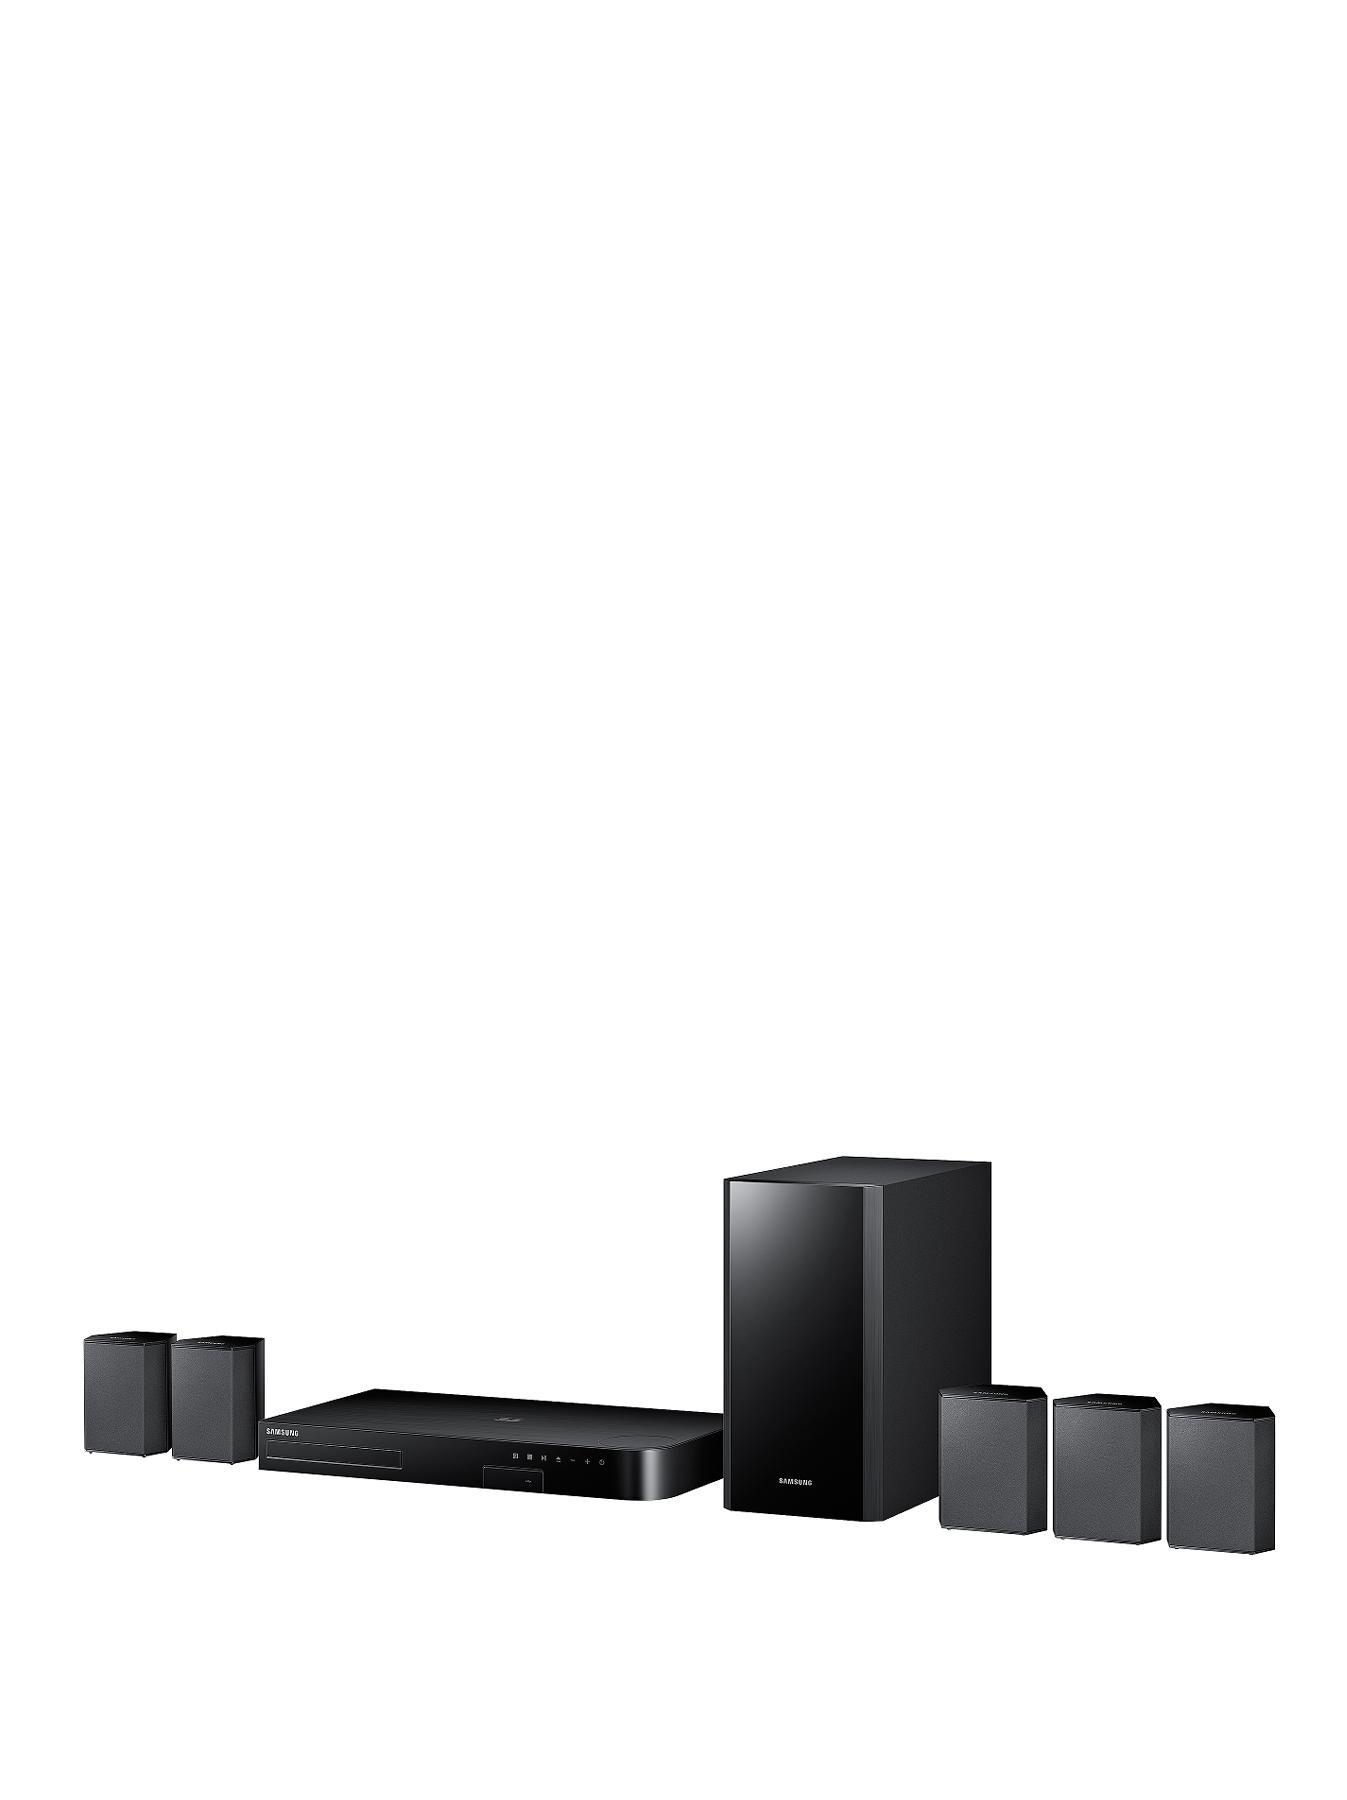 Samsung HT-H4500R 3D Blu-ray Home Theatre System with Online Content